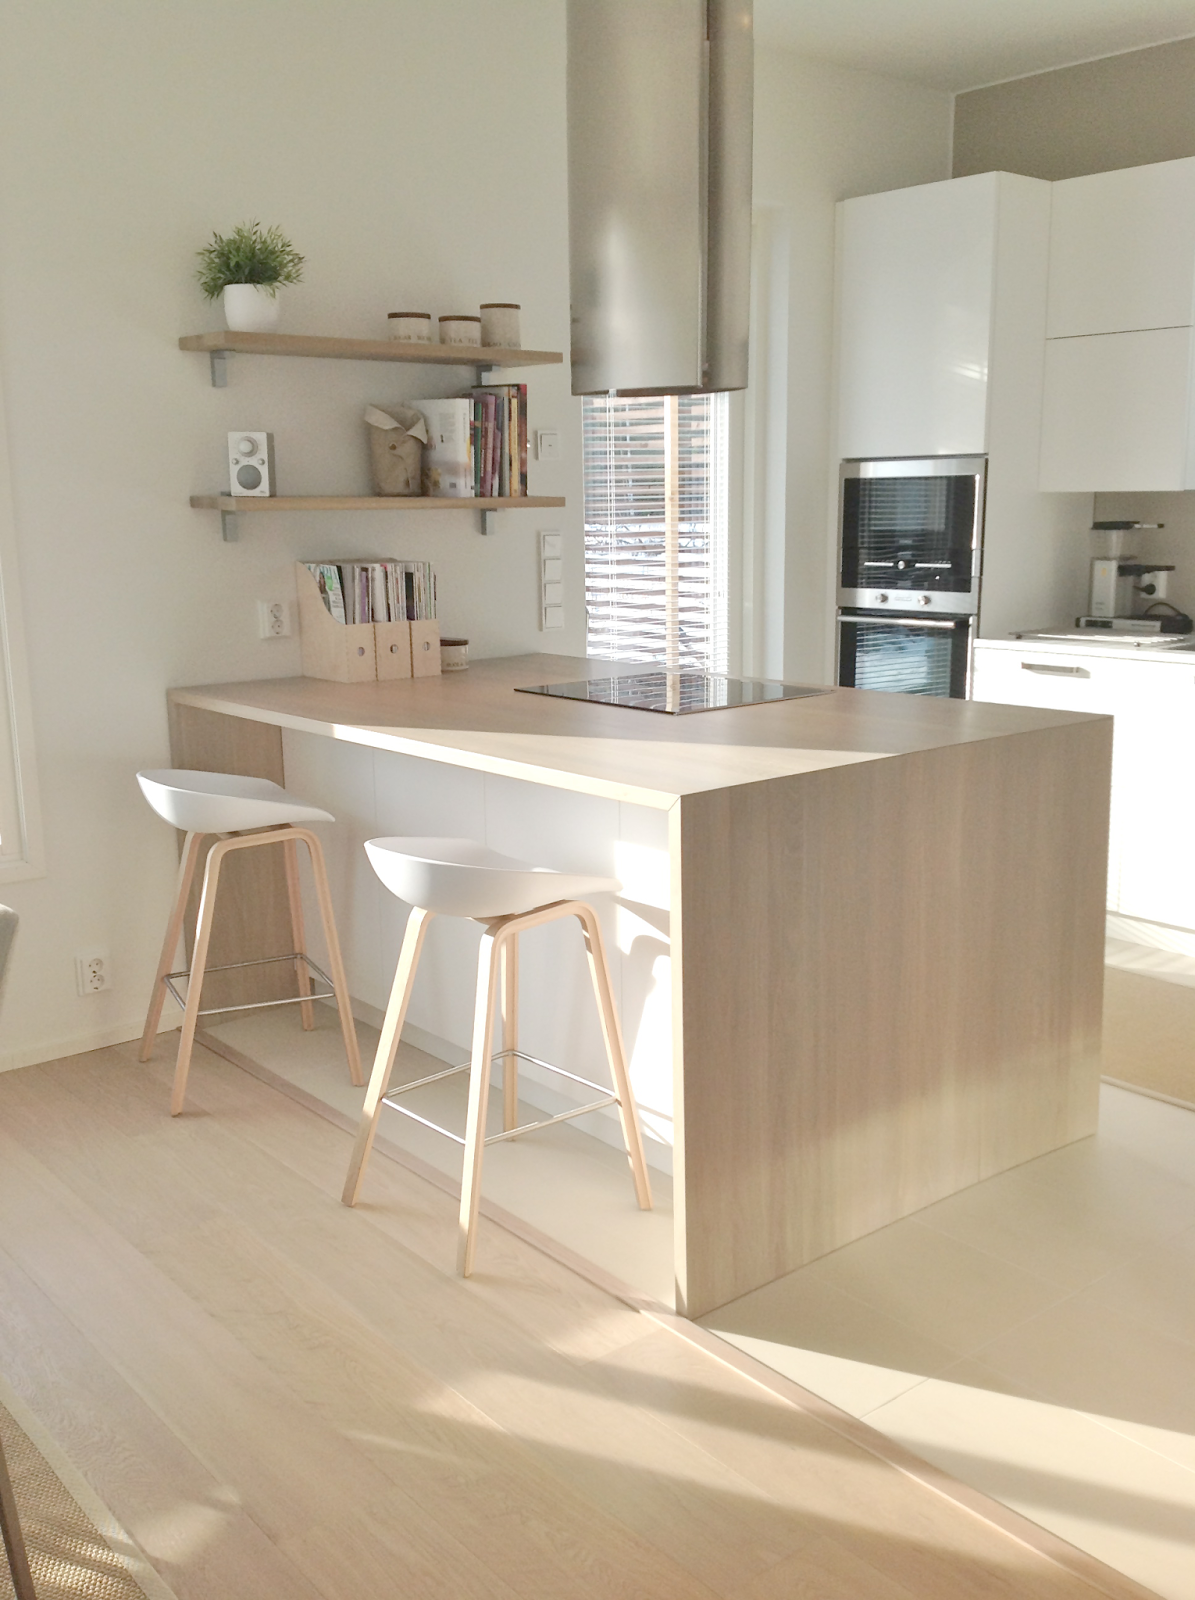 Cuisine Deco Scandinave Inspiration Cuisine Scandinave Kitchen